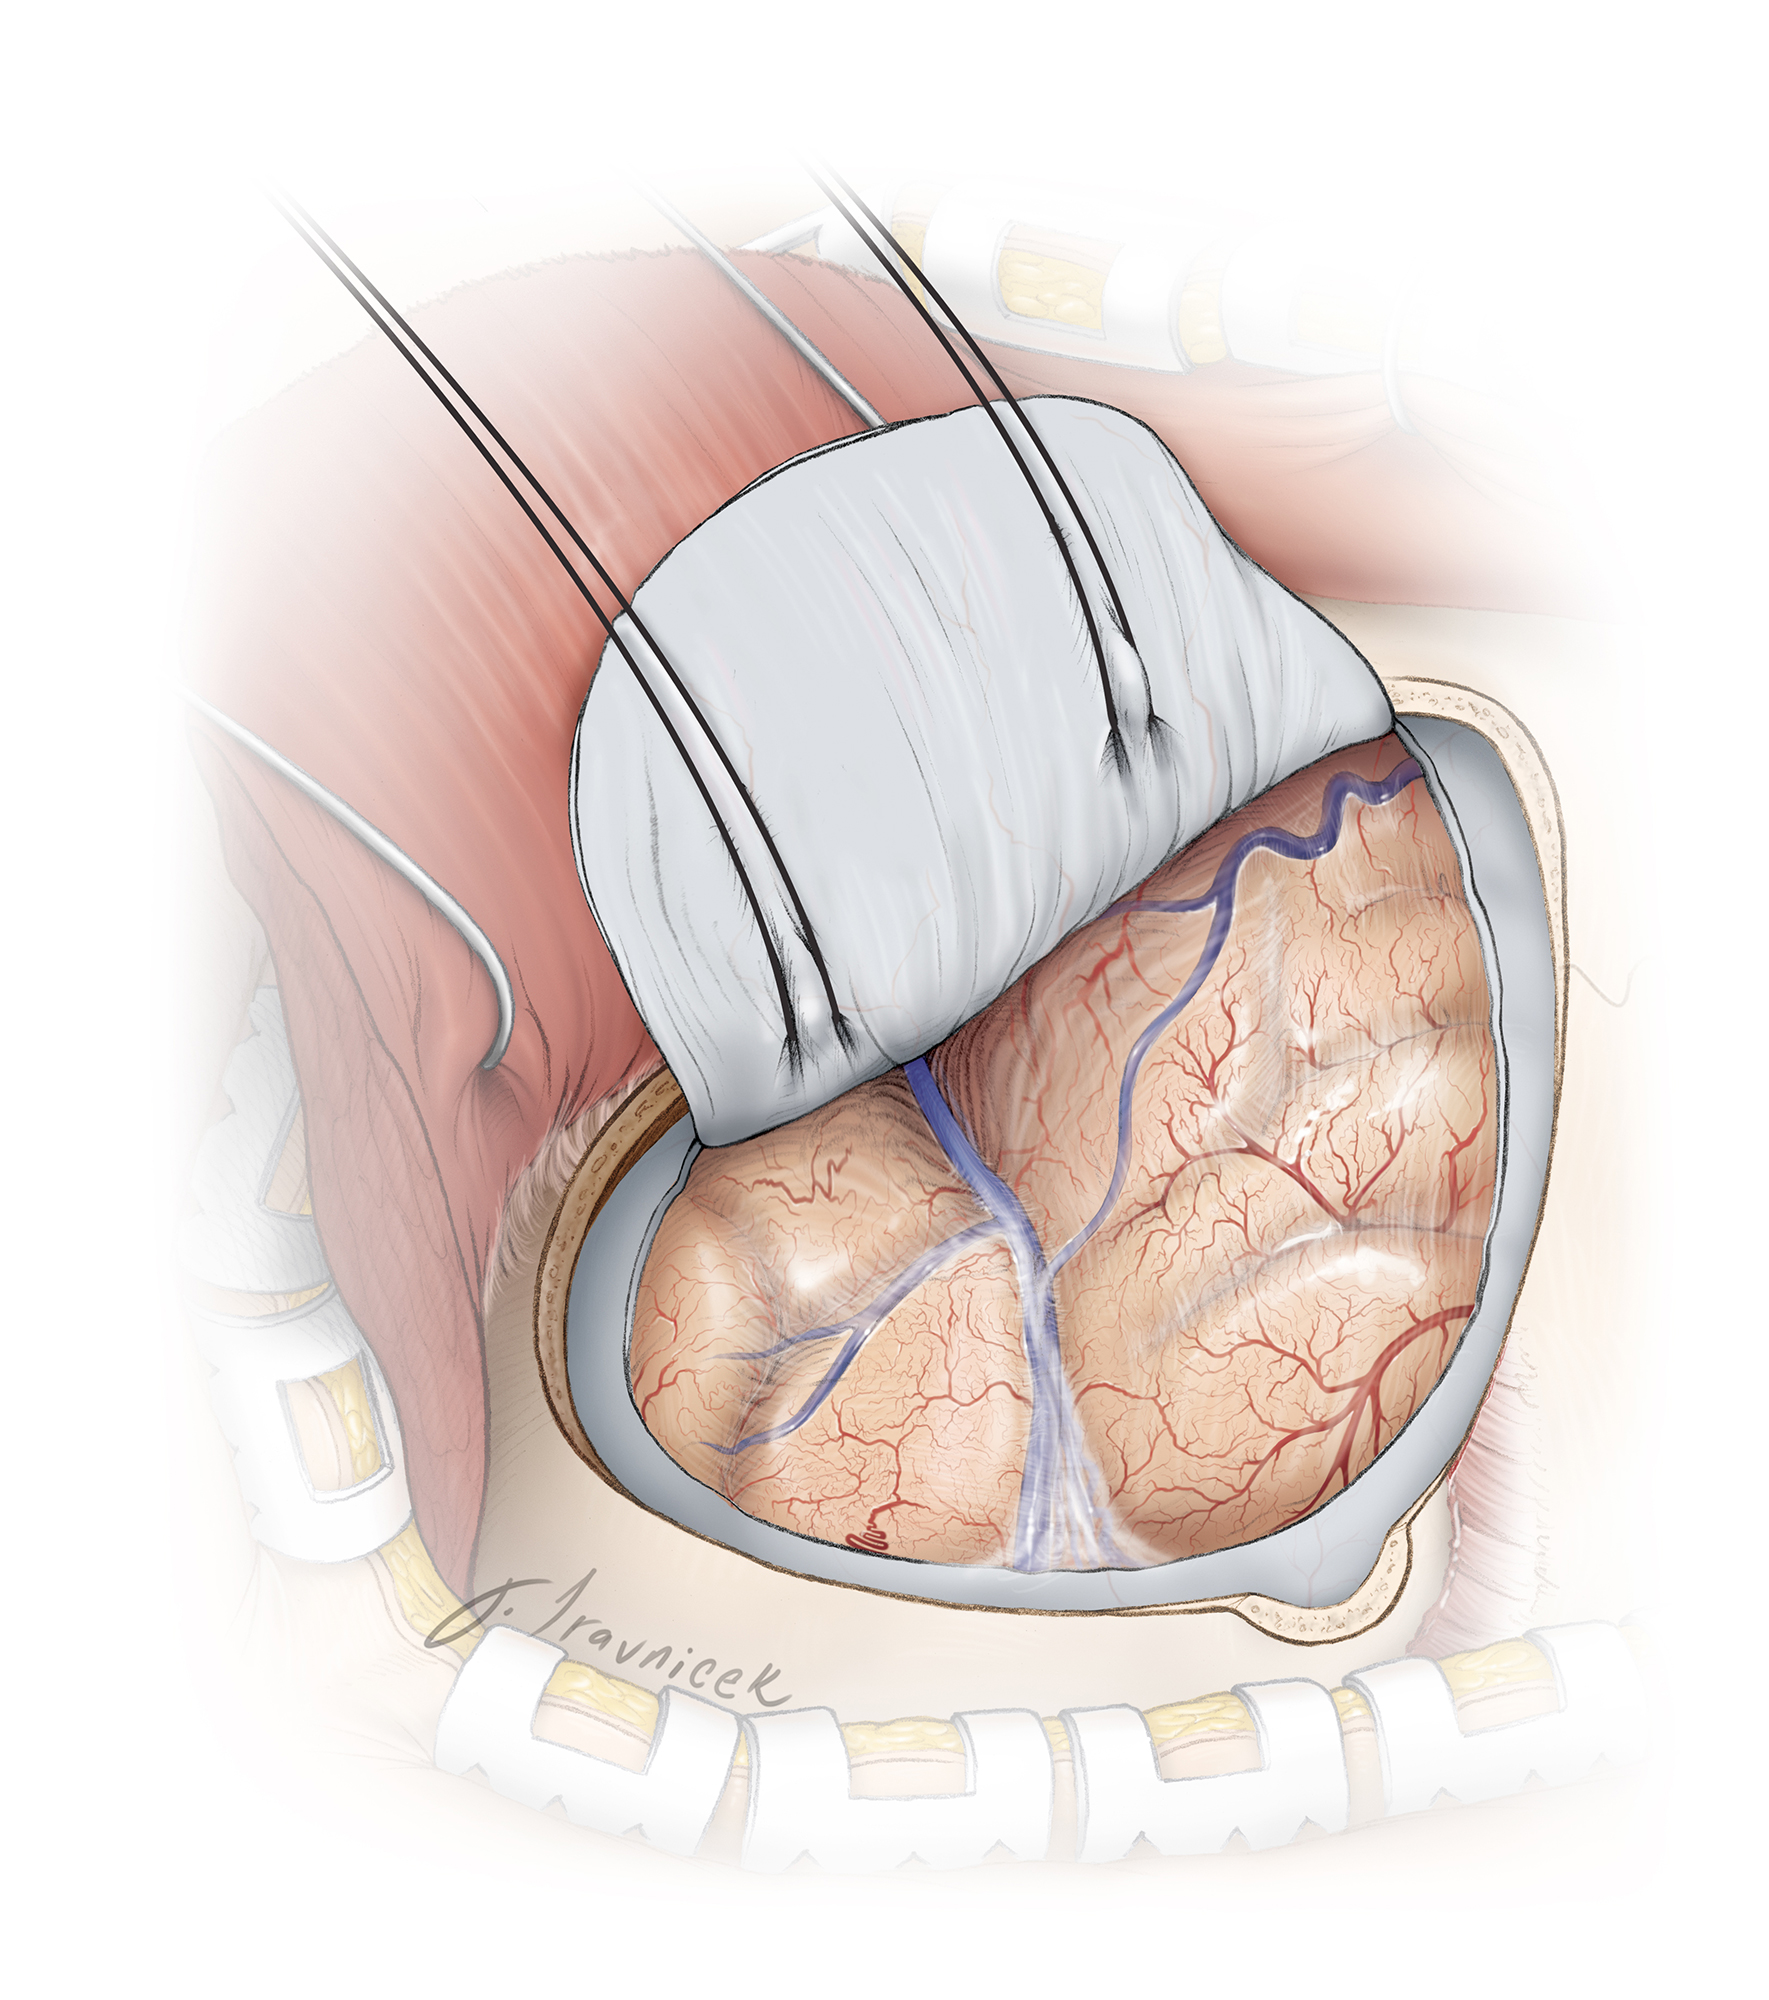 Figure 7: Initial intradural exposure is illustrated. Adequate sphenoid wing removal is evident when the dura can be mobilized flat over the orbital roof and along the anterior edge of the craniotomy.